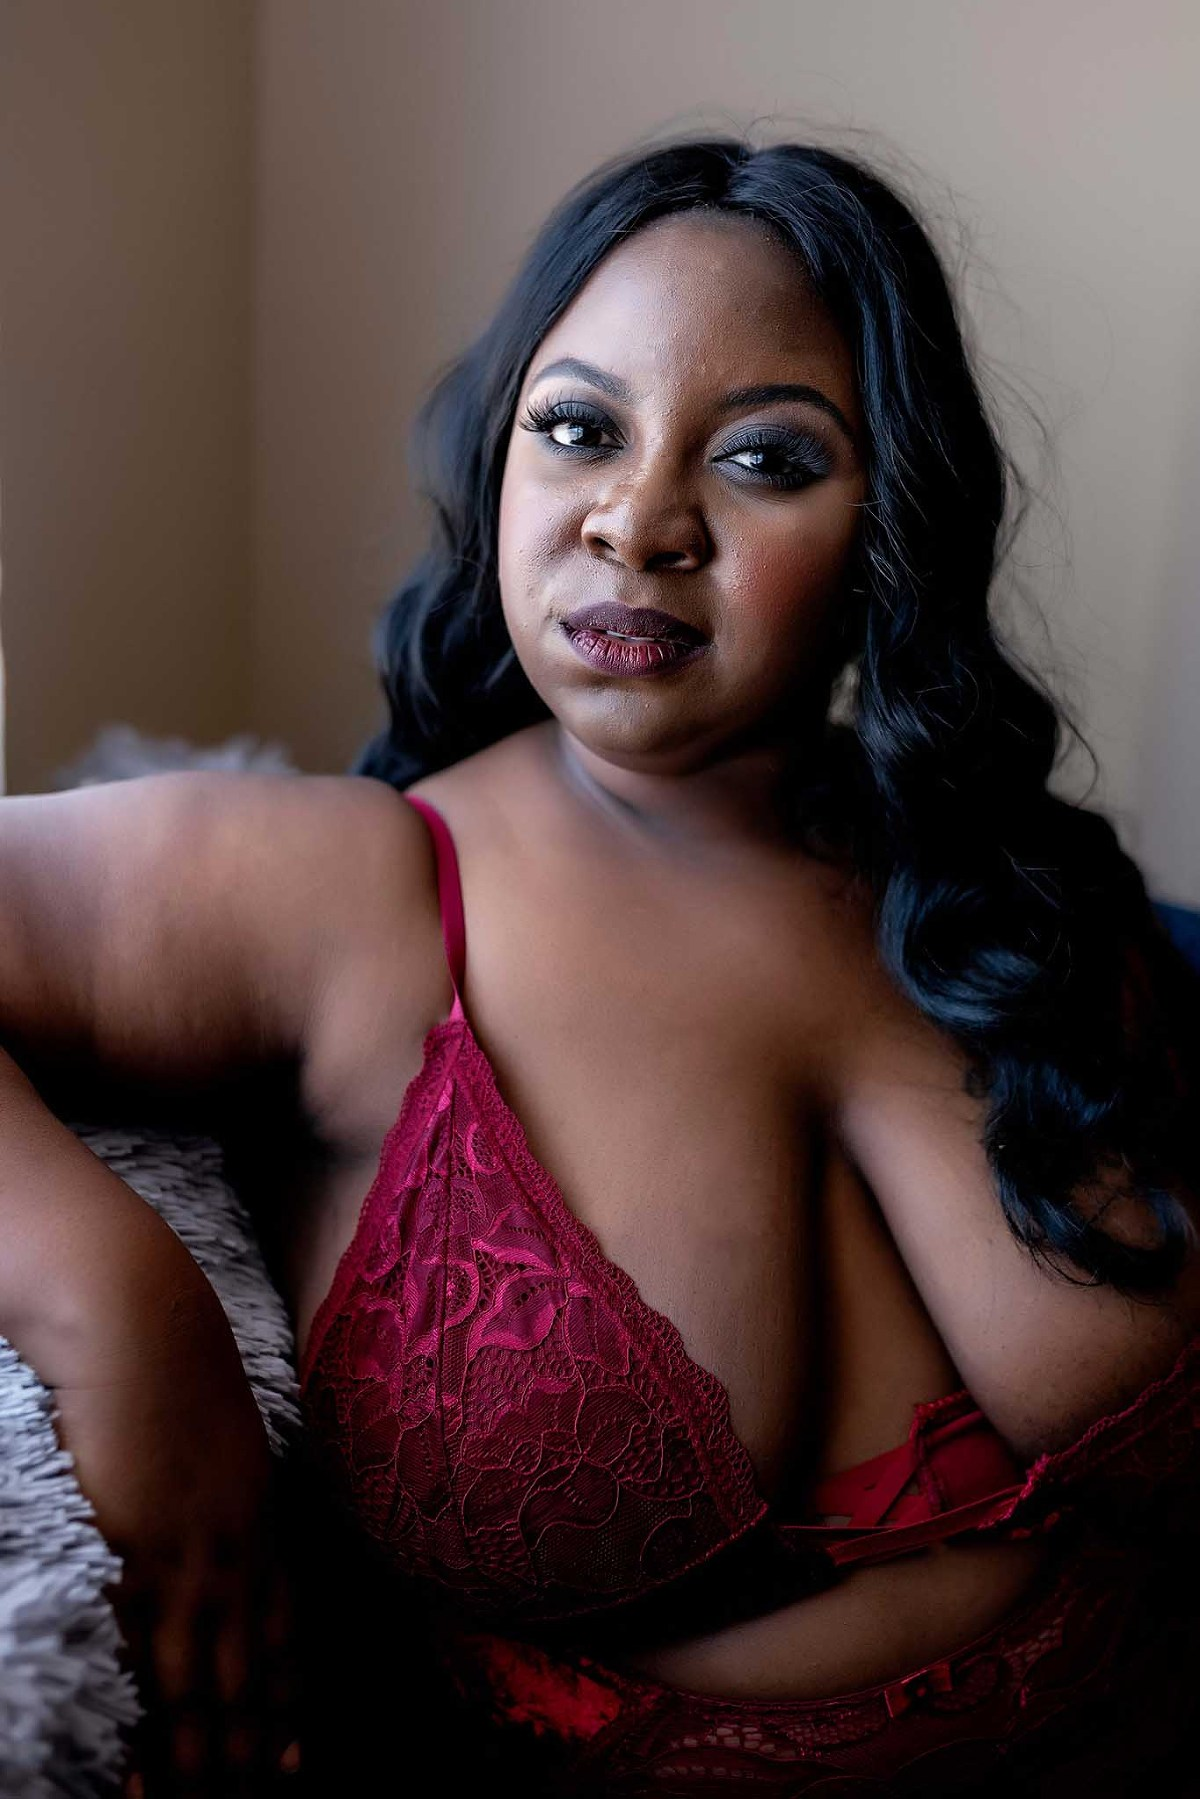 oakland tn eads tn memphis tn collierville tn boudoir photographer bodystocking amazon curvy bodoir plus size boudoir